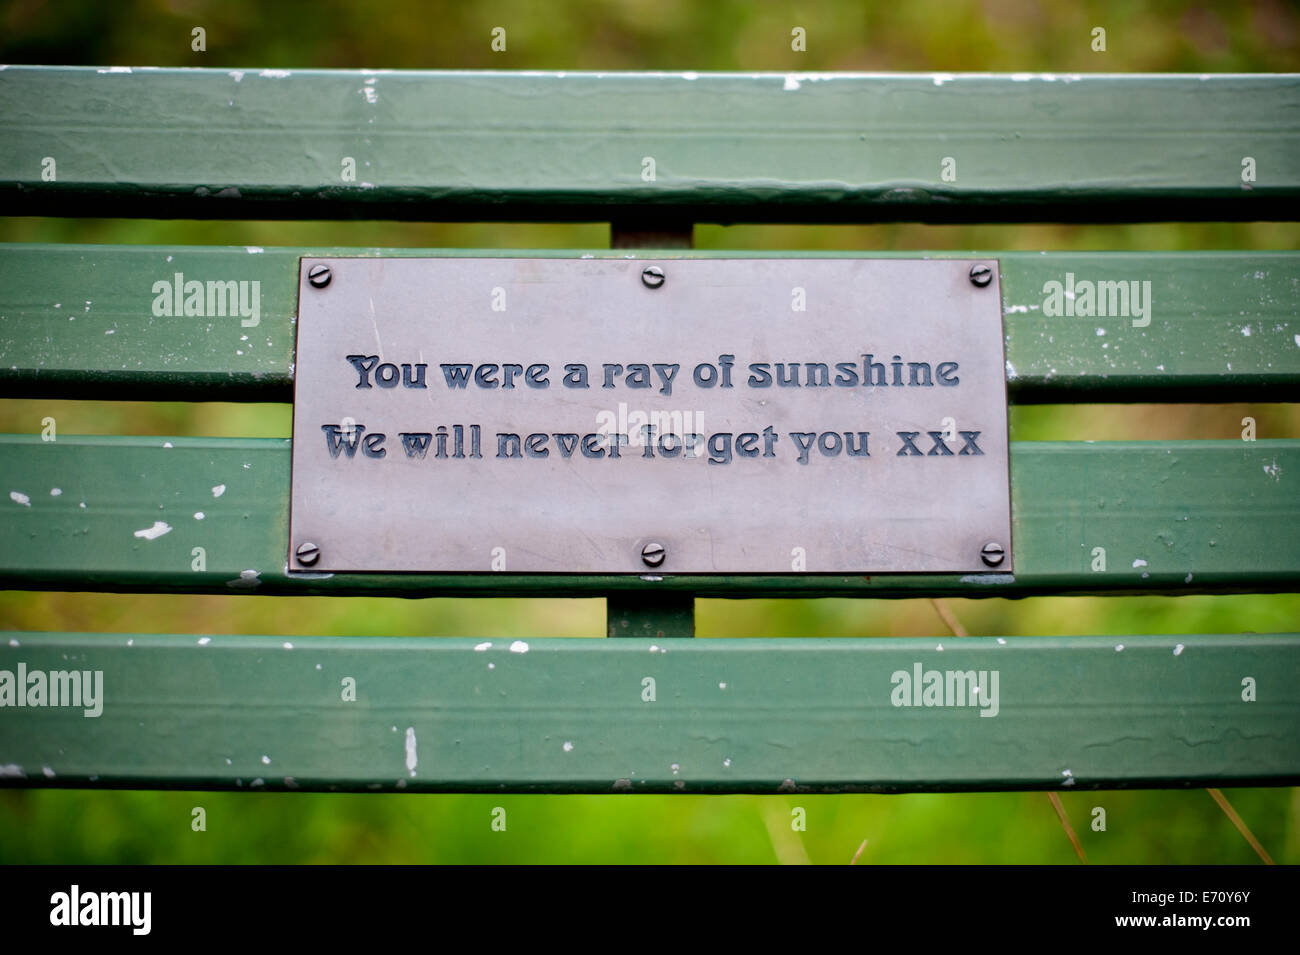 Memorial Plaque On A Bench Stock Photo Royalty Free Image 73165427 Alamy